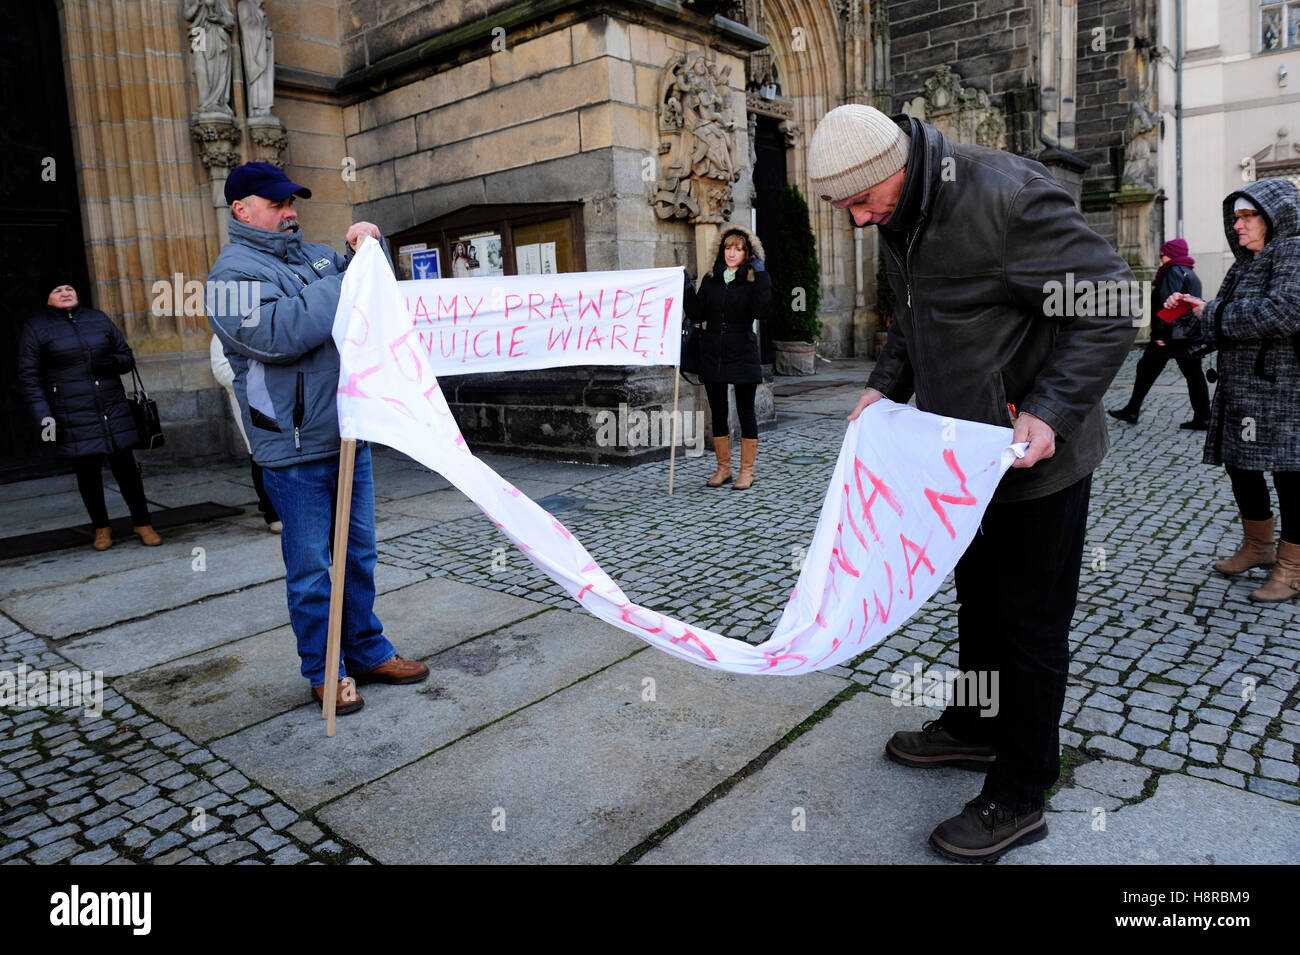 Swidnica, Poland, 16th Nov.2016, Curia Bishop, protest against Bishop Ignacy Dec. Credit:  Kazimierz Jurewicz/Alamy - Stock Image